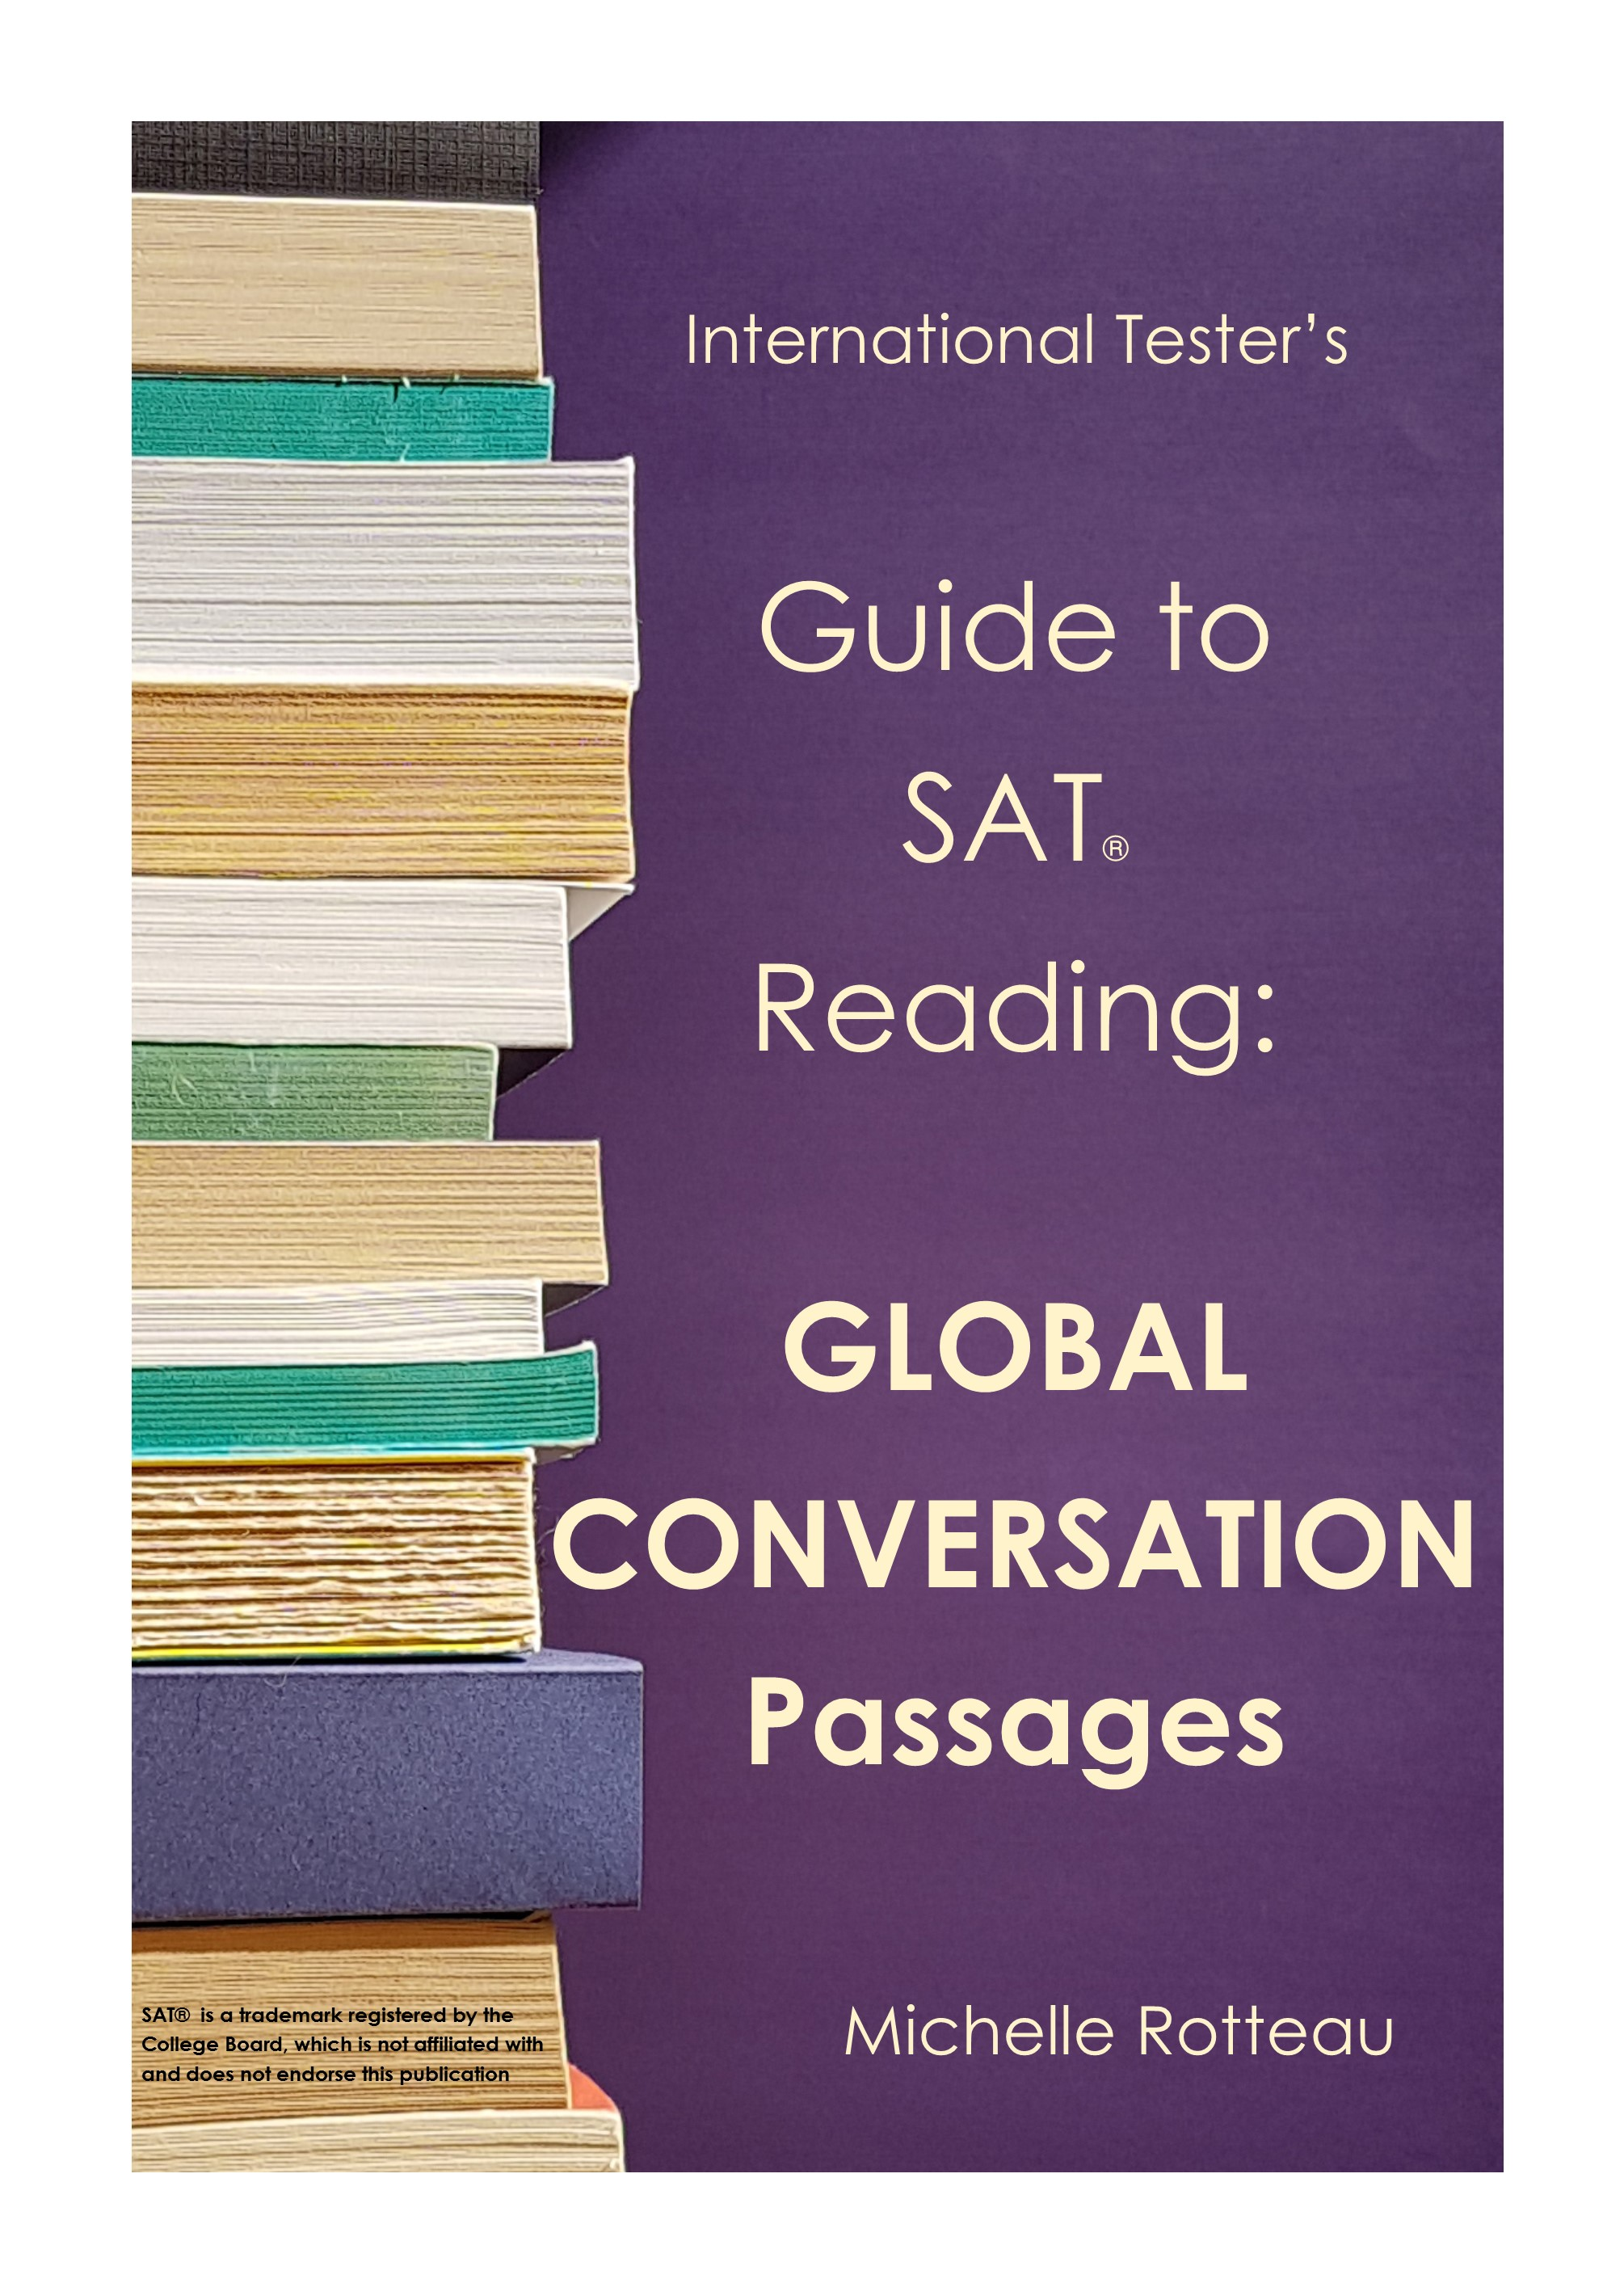 Guide to SAT Reading: Global Conversation Passages | internationaltester